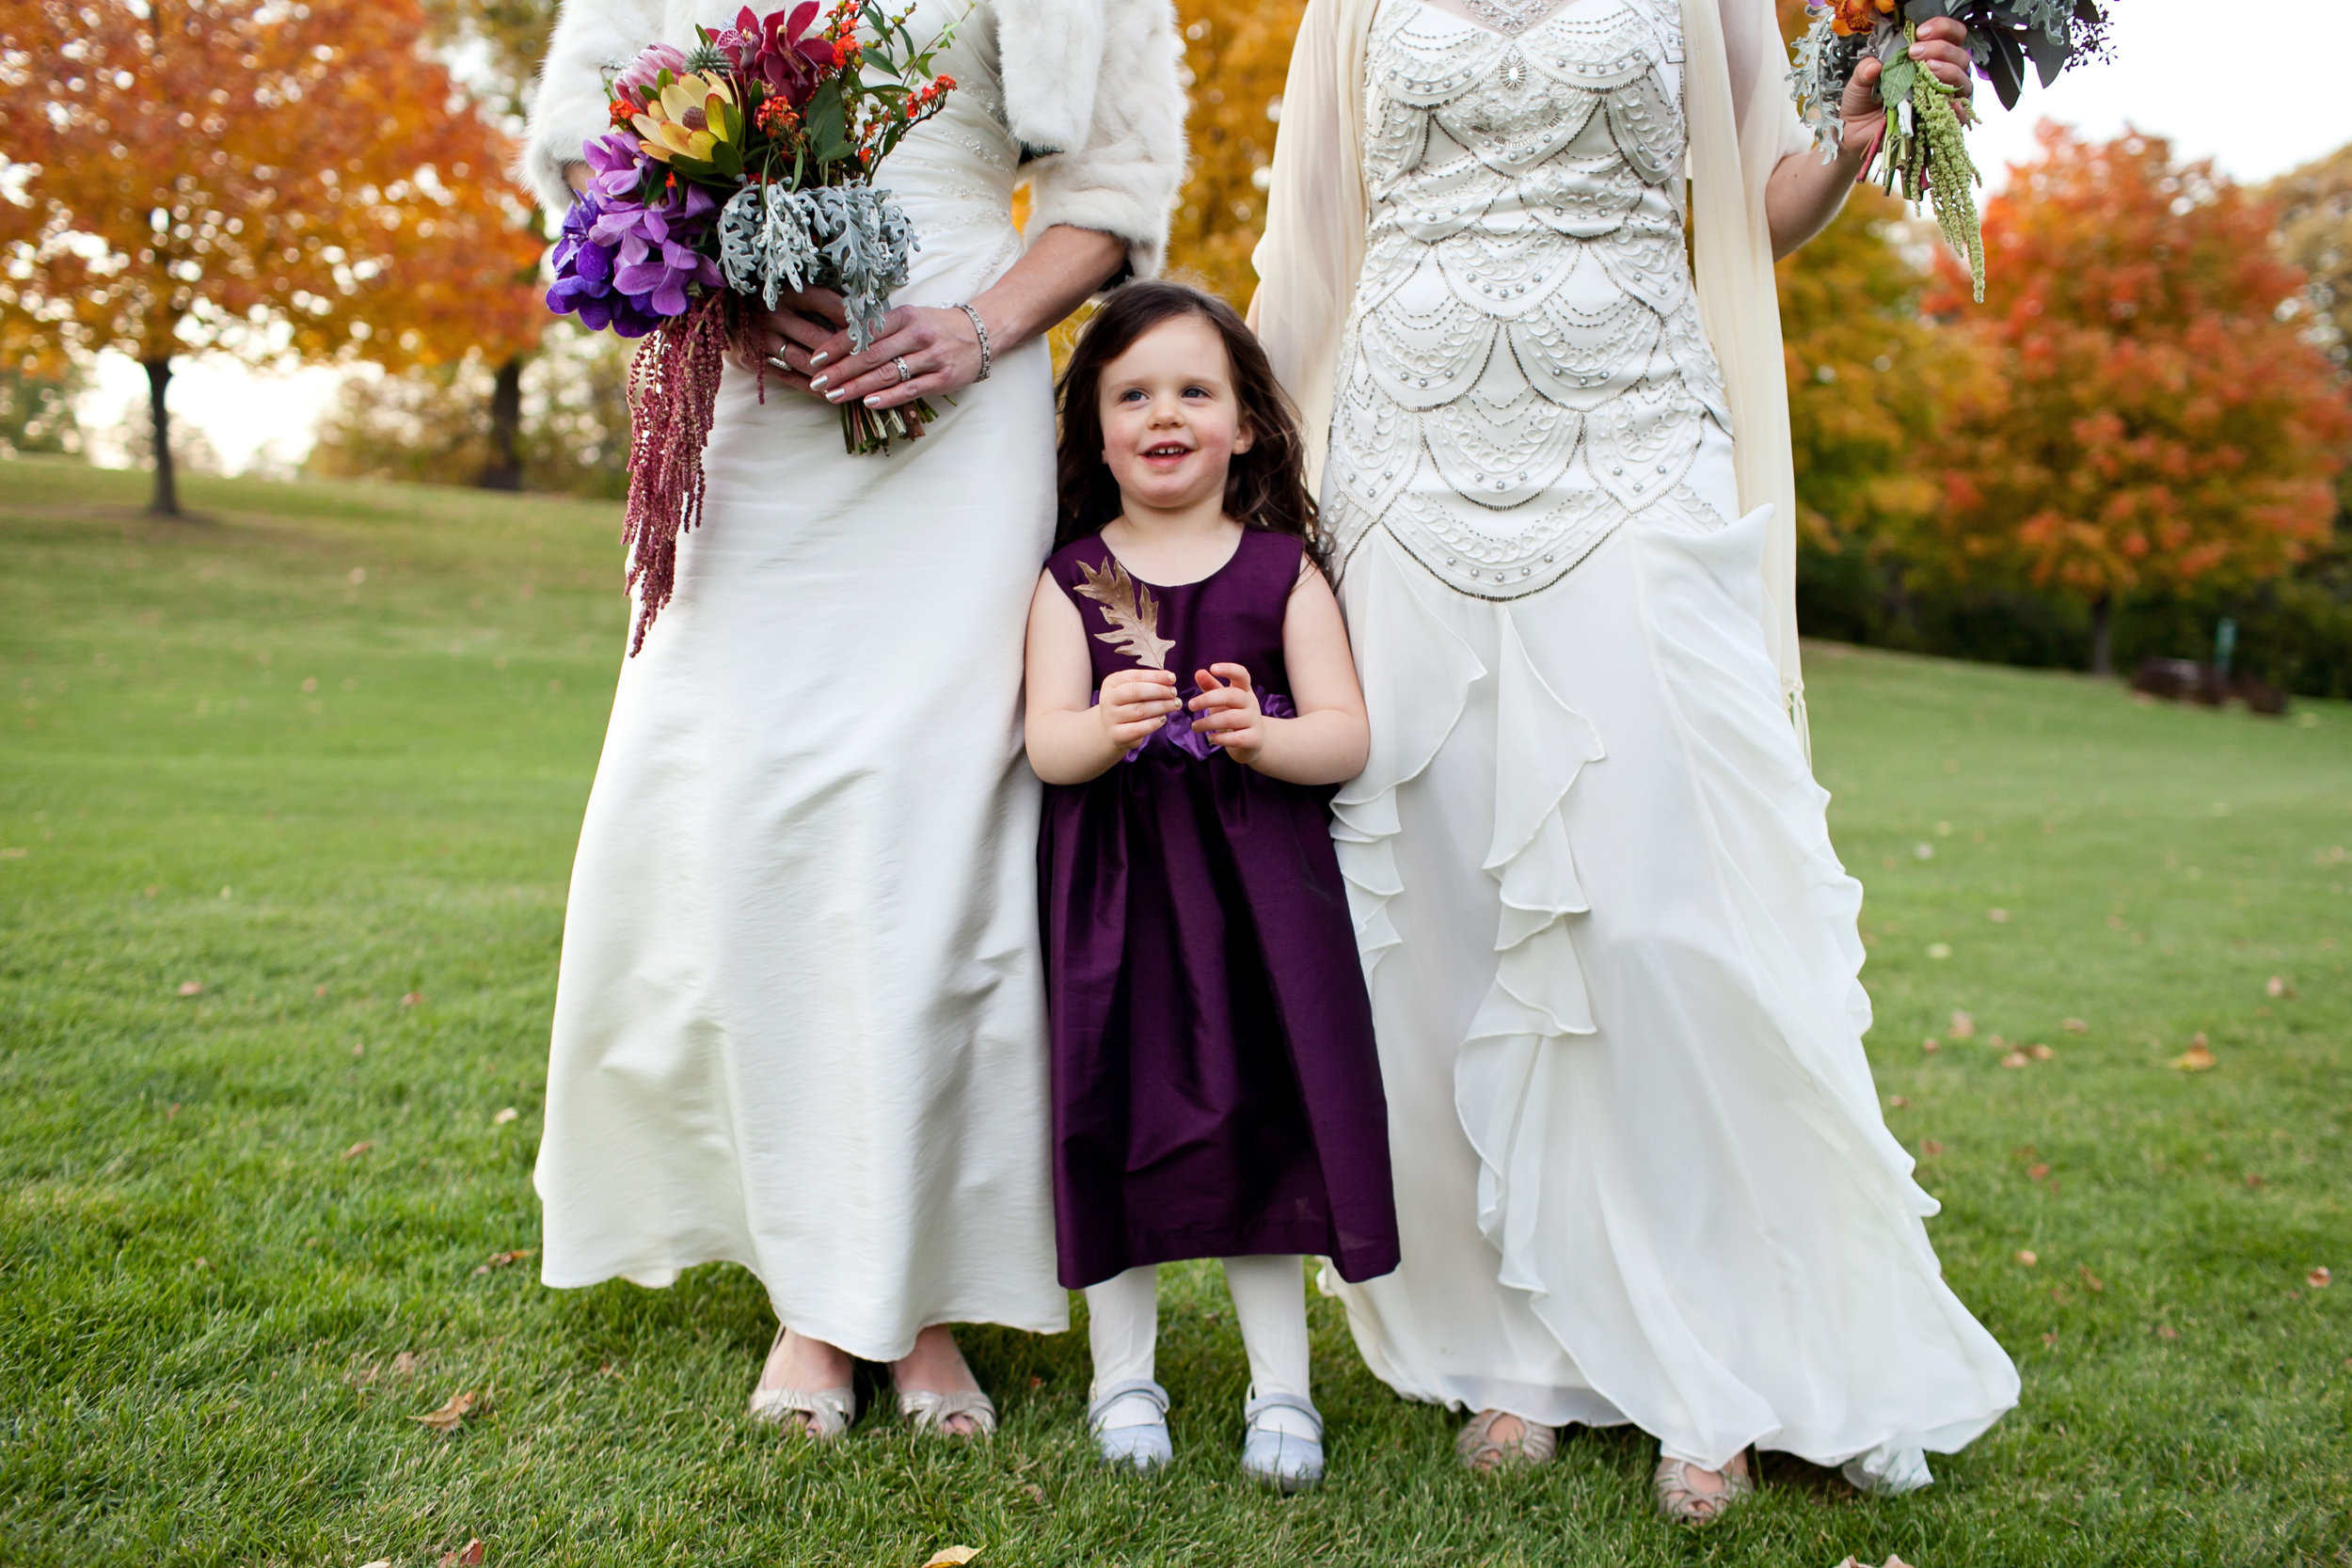 37 bride and flower girl two brides with flower girl candid wedding photos purple flower girl dress Life Design Events.jpg